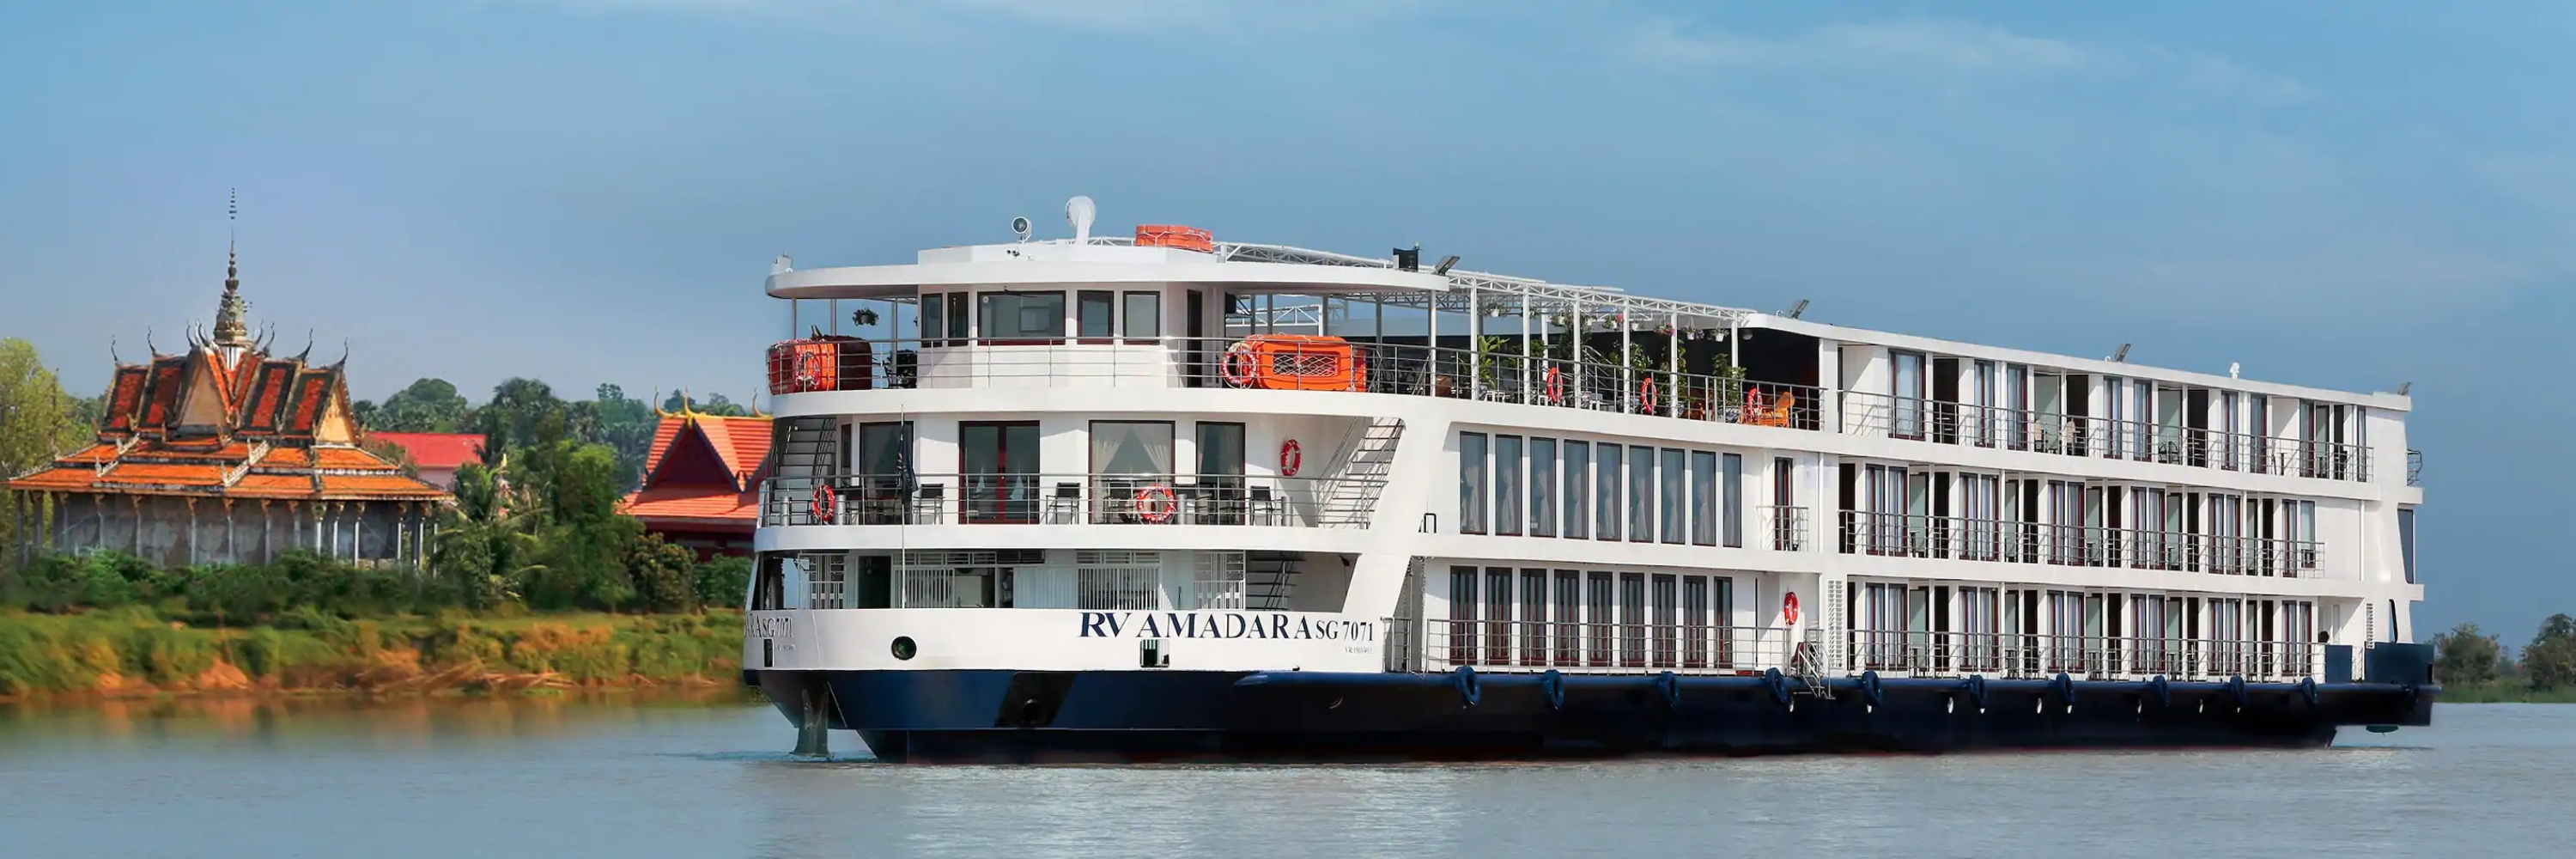 Amawaterways up to $1,000 cruise savings, upgrades & up to $500 onboard credit